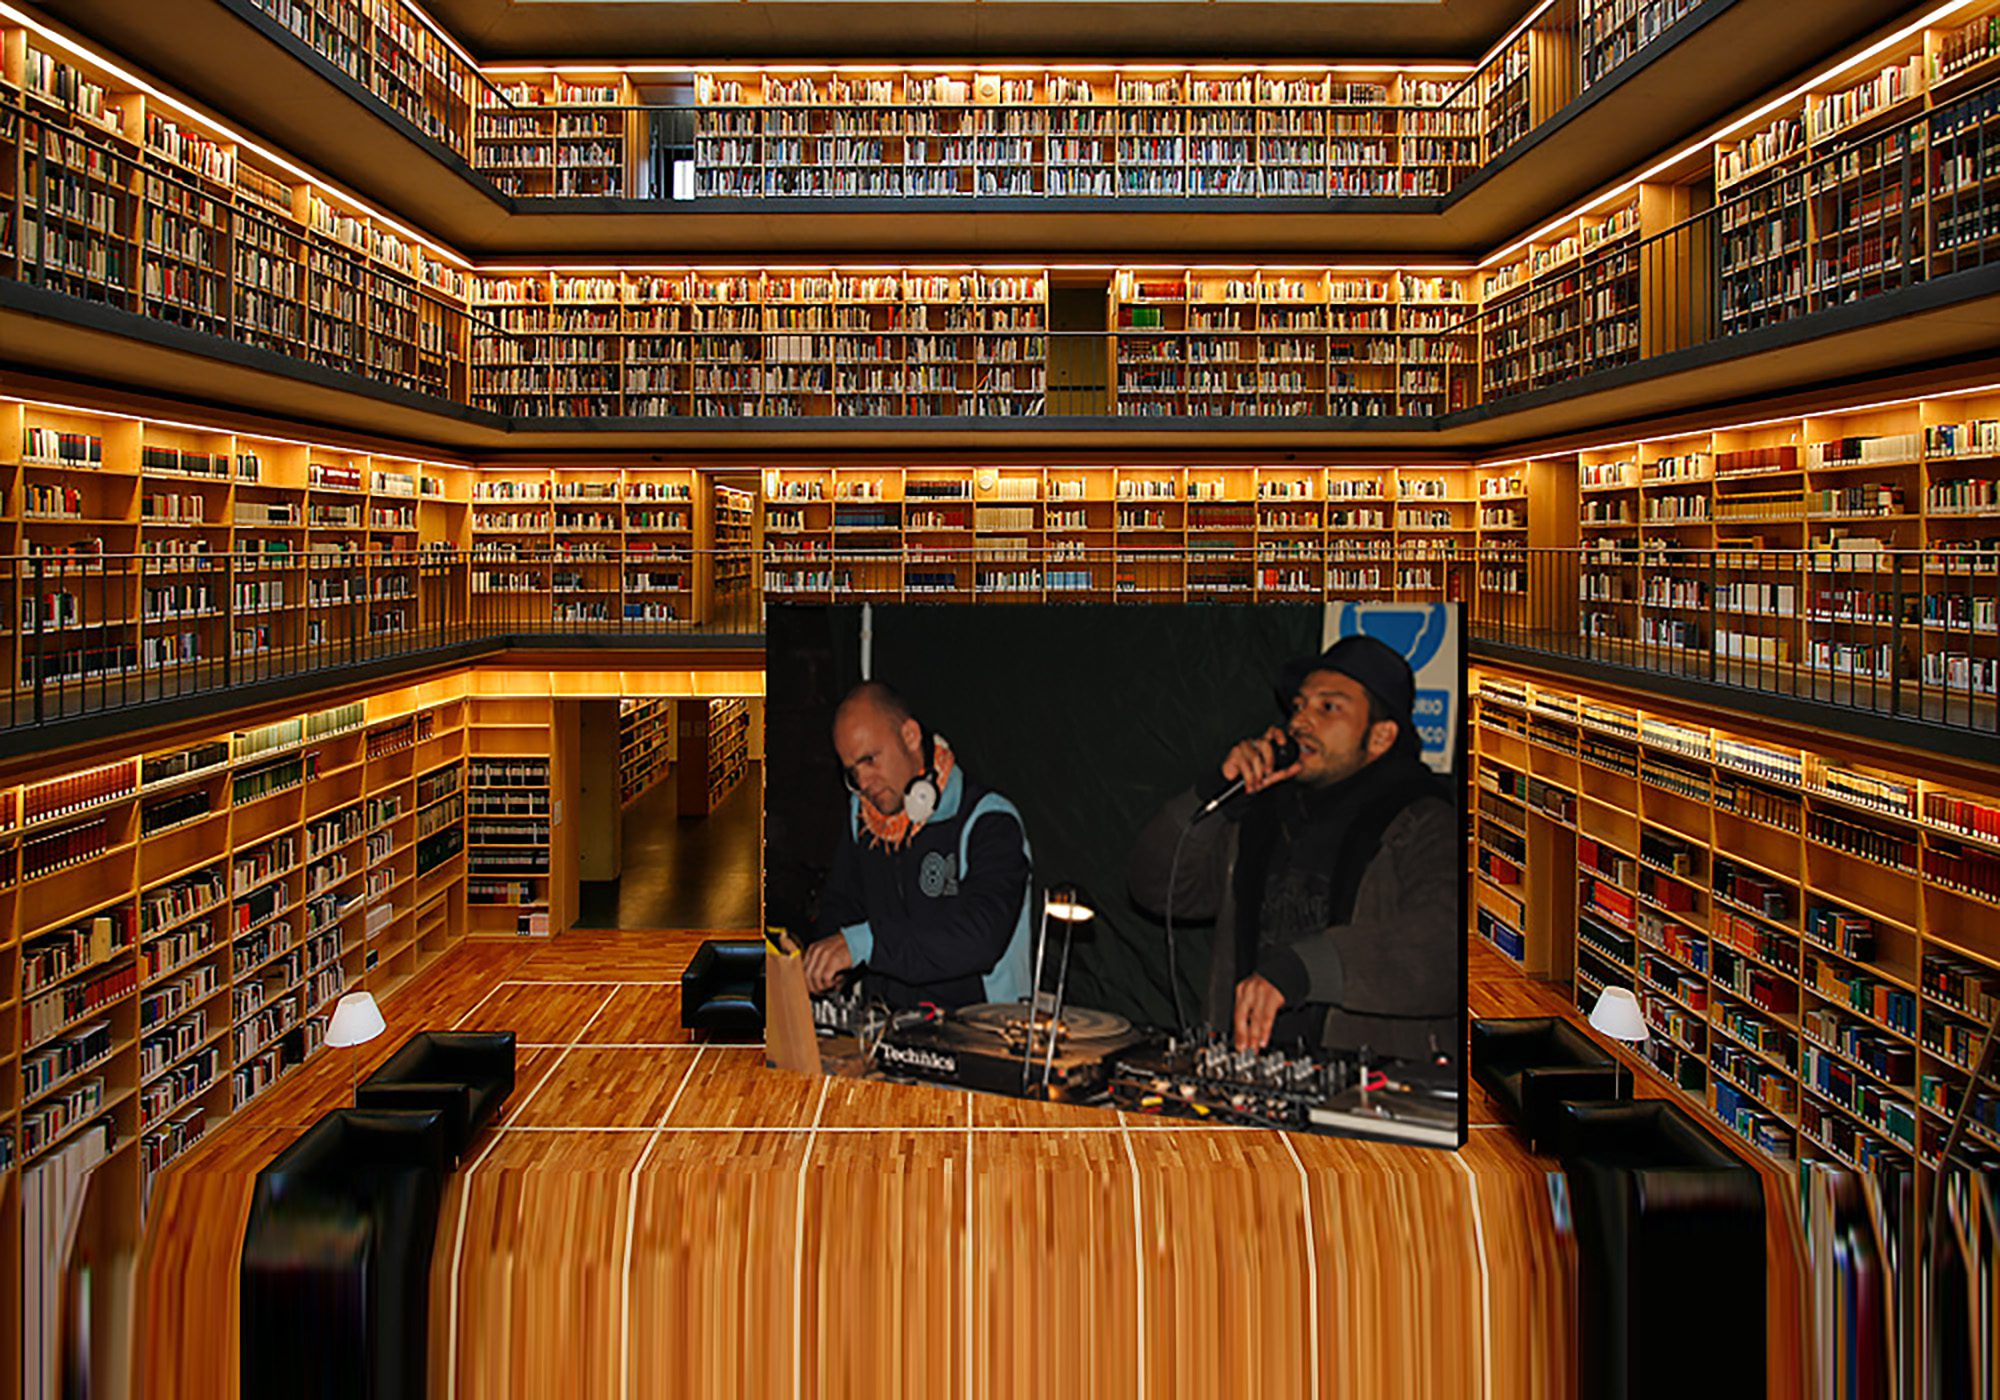 dj libraries